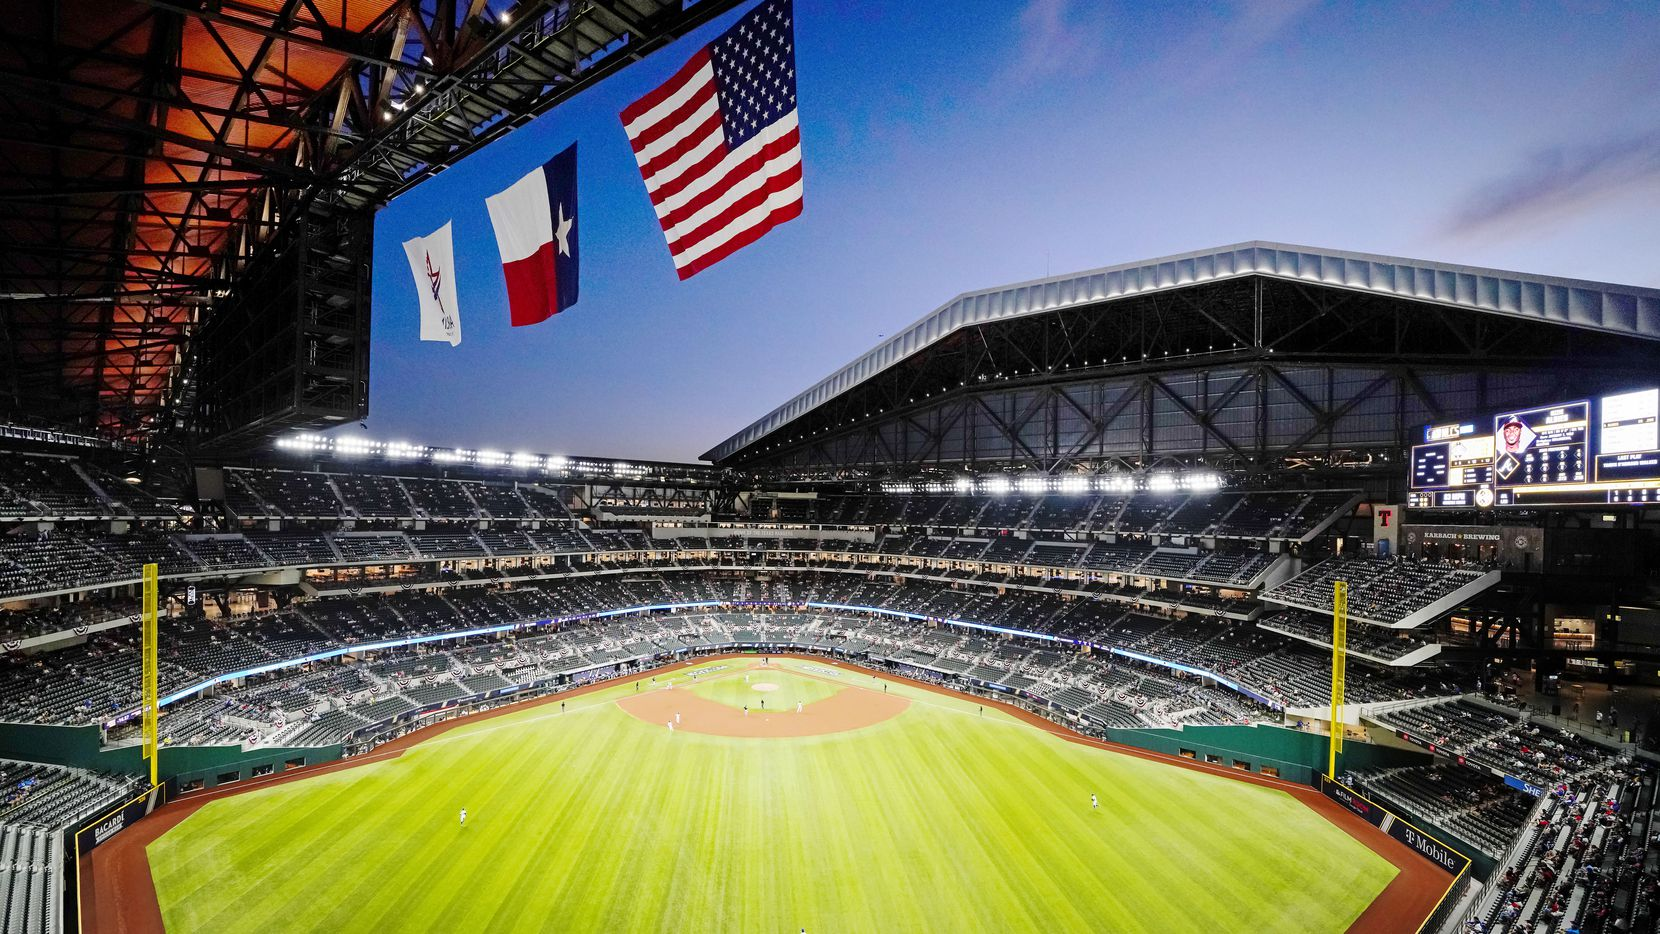 FILE — Globe Life Field is seen with the roof open on a beautiful fall night during Game 1 of the National League Championship Series on Oct. 12, 2020 in Arlington, Texas.